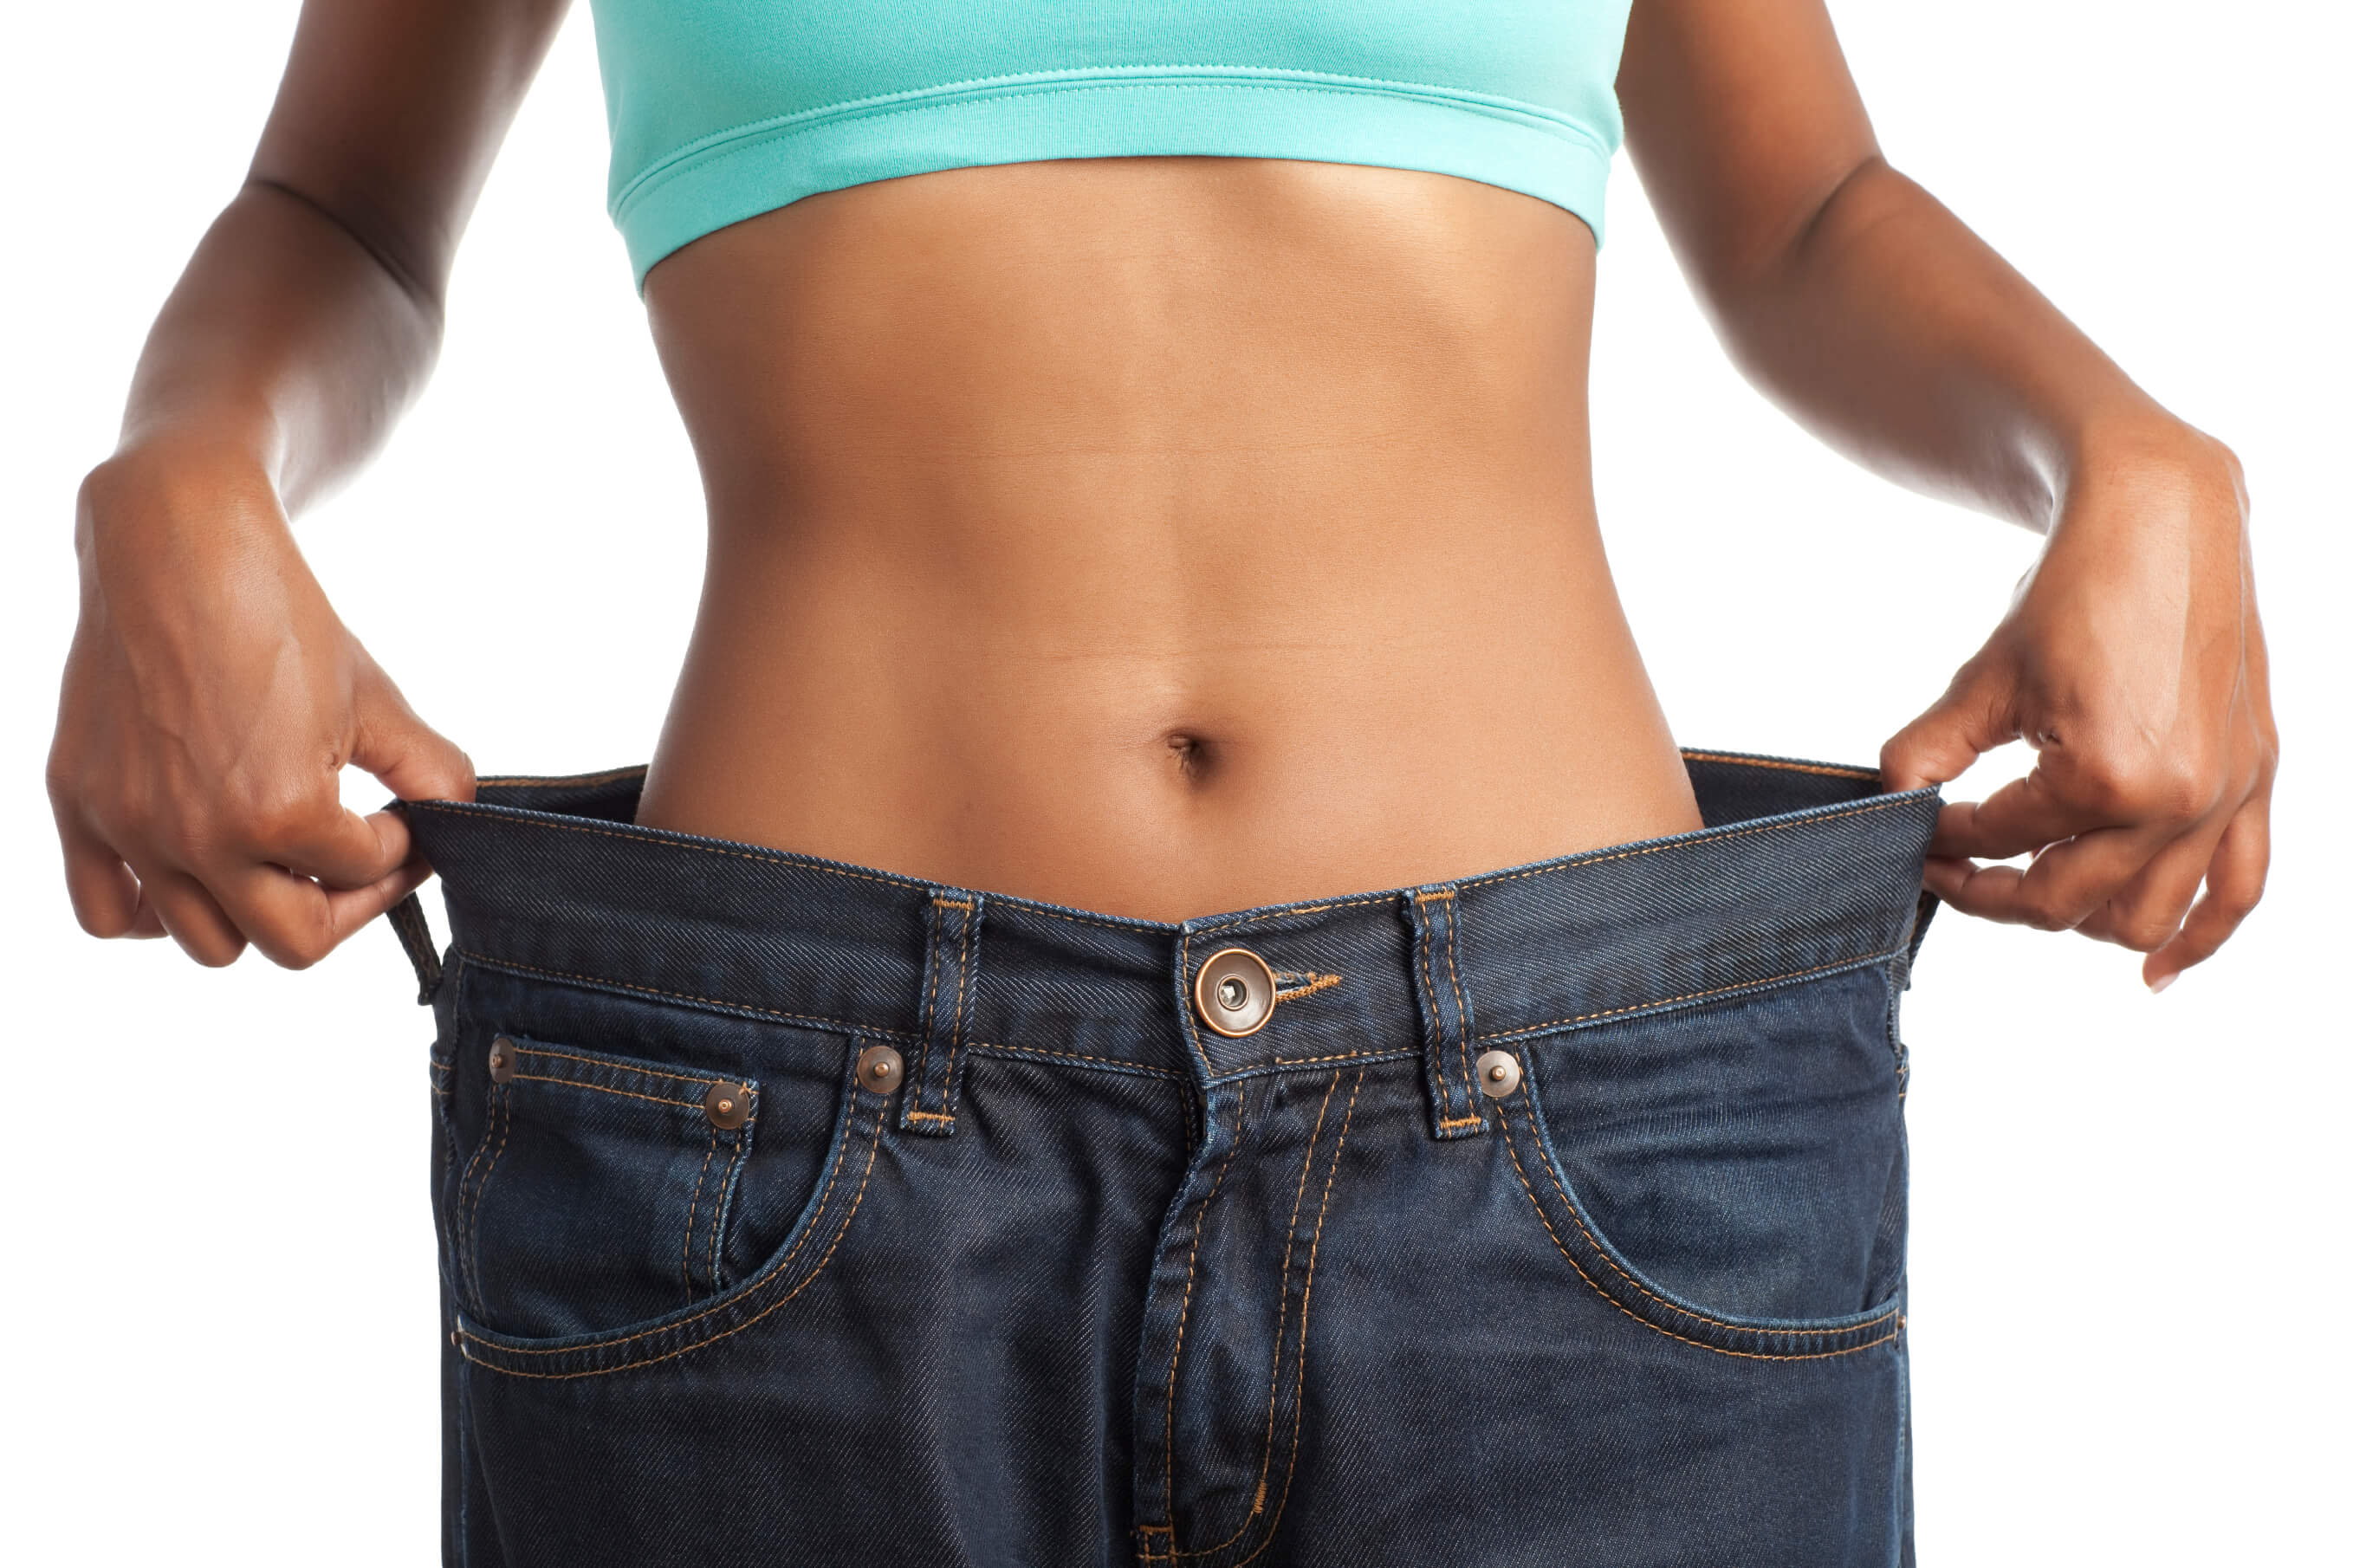 Learn More About Vaser Lipo Before Considering The Surgery